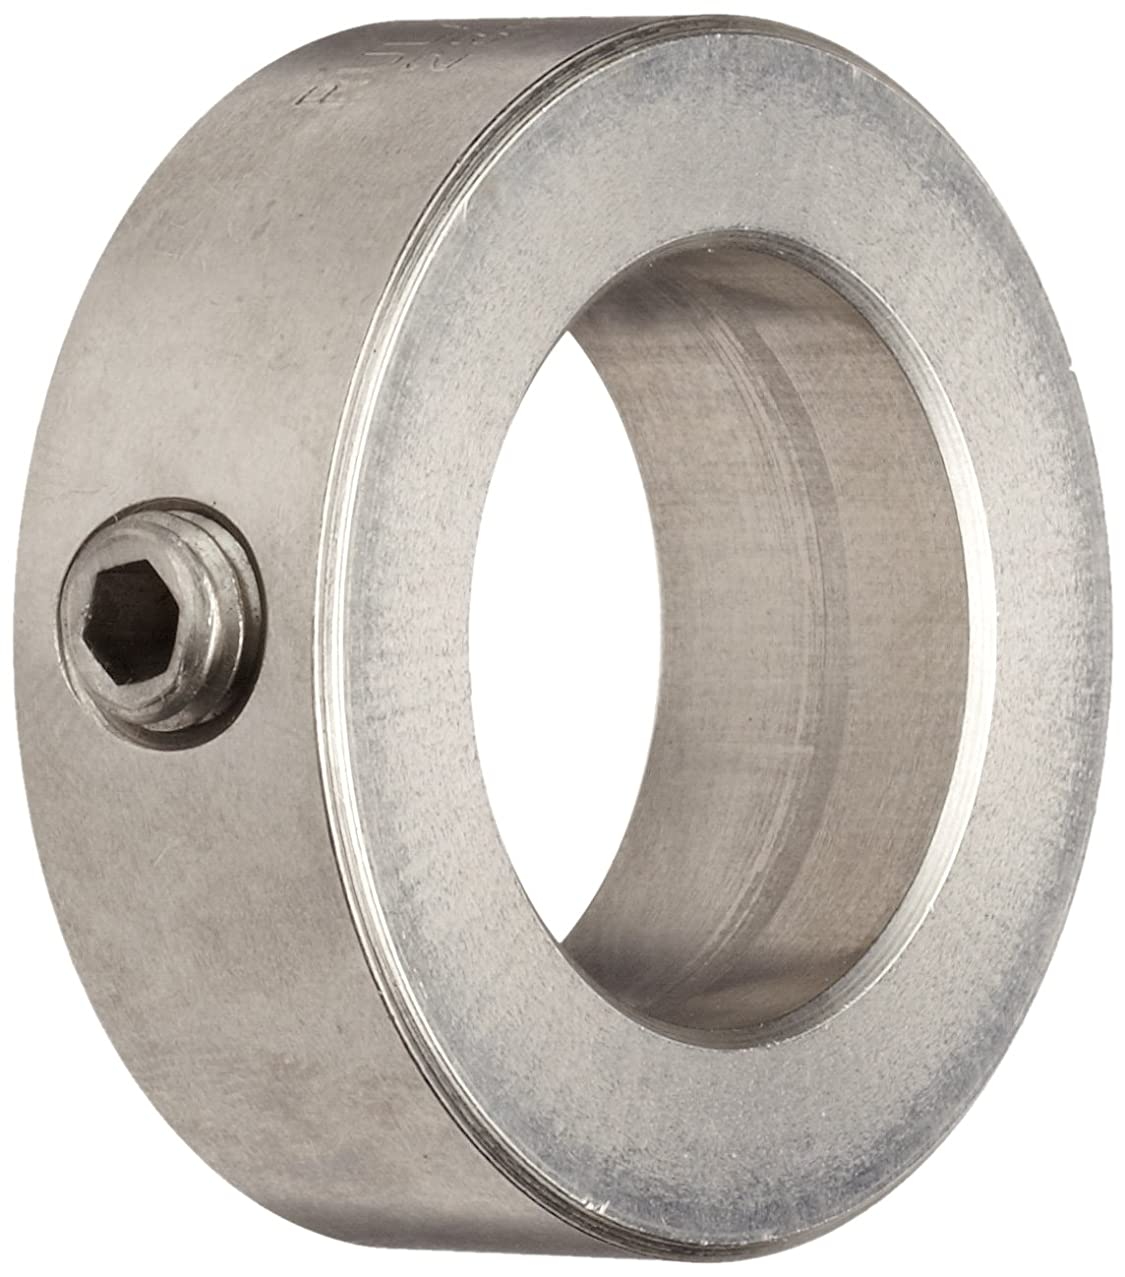 Ruland MSC-16-SS Set Screw Shaft Collar, Stainless Steel, Metric, 16mm Bore, 28mm OD, 12mm Width (Pack of 2)